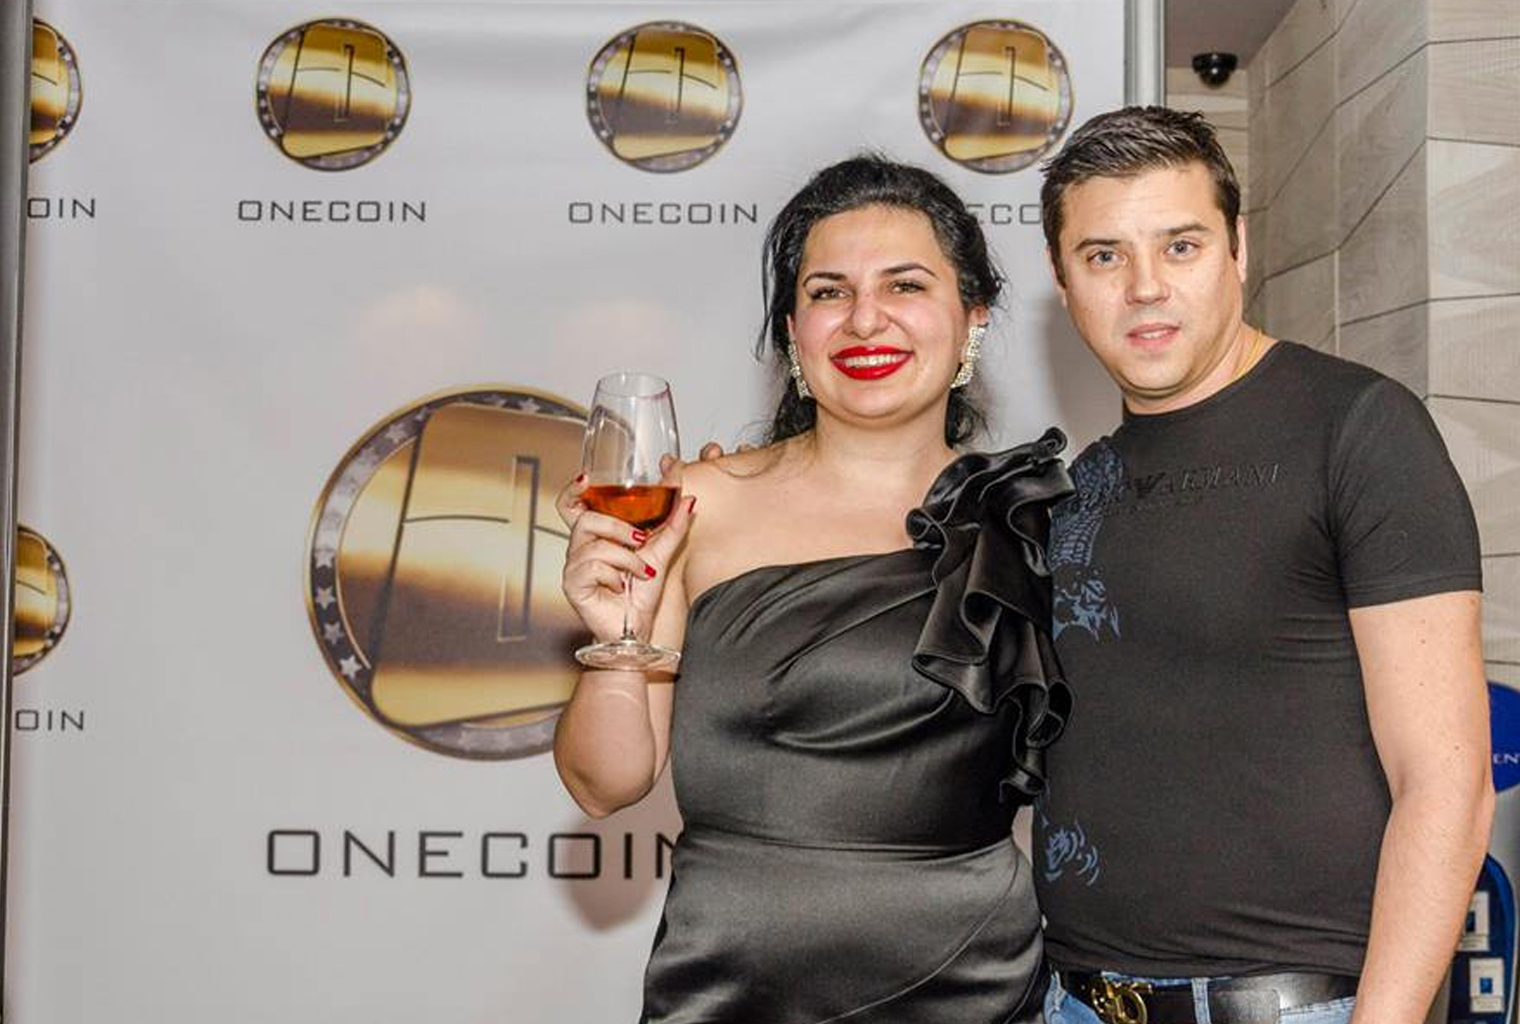 Charges of Fraudulent Pretense: US Court Unseals Onecoin Cofounder's Indictment